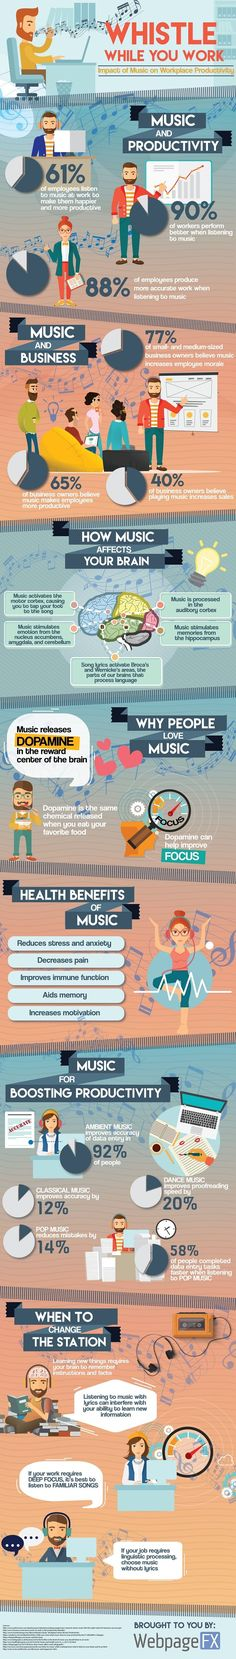 Whistling While You Work: How Music Helps Productivity #Infographic